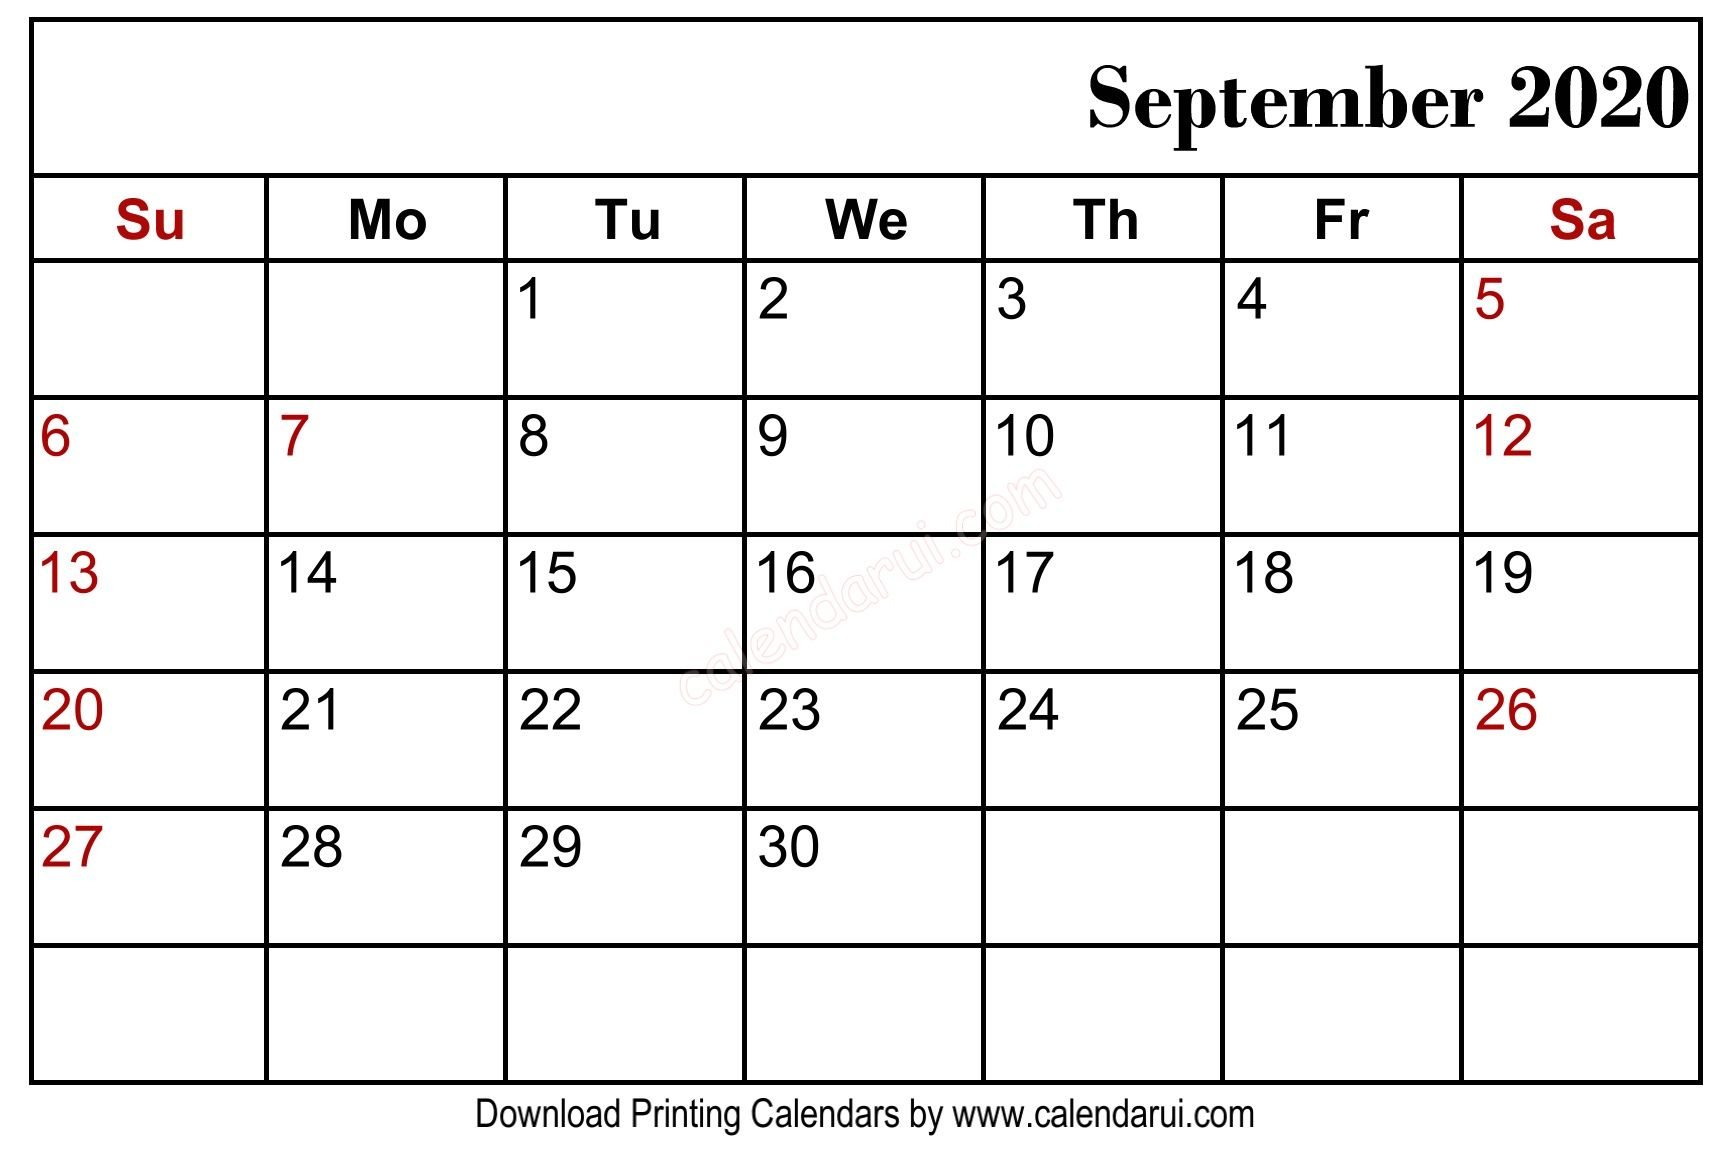 September 2020 Blank Calendar Printable Free Download